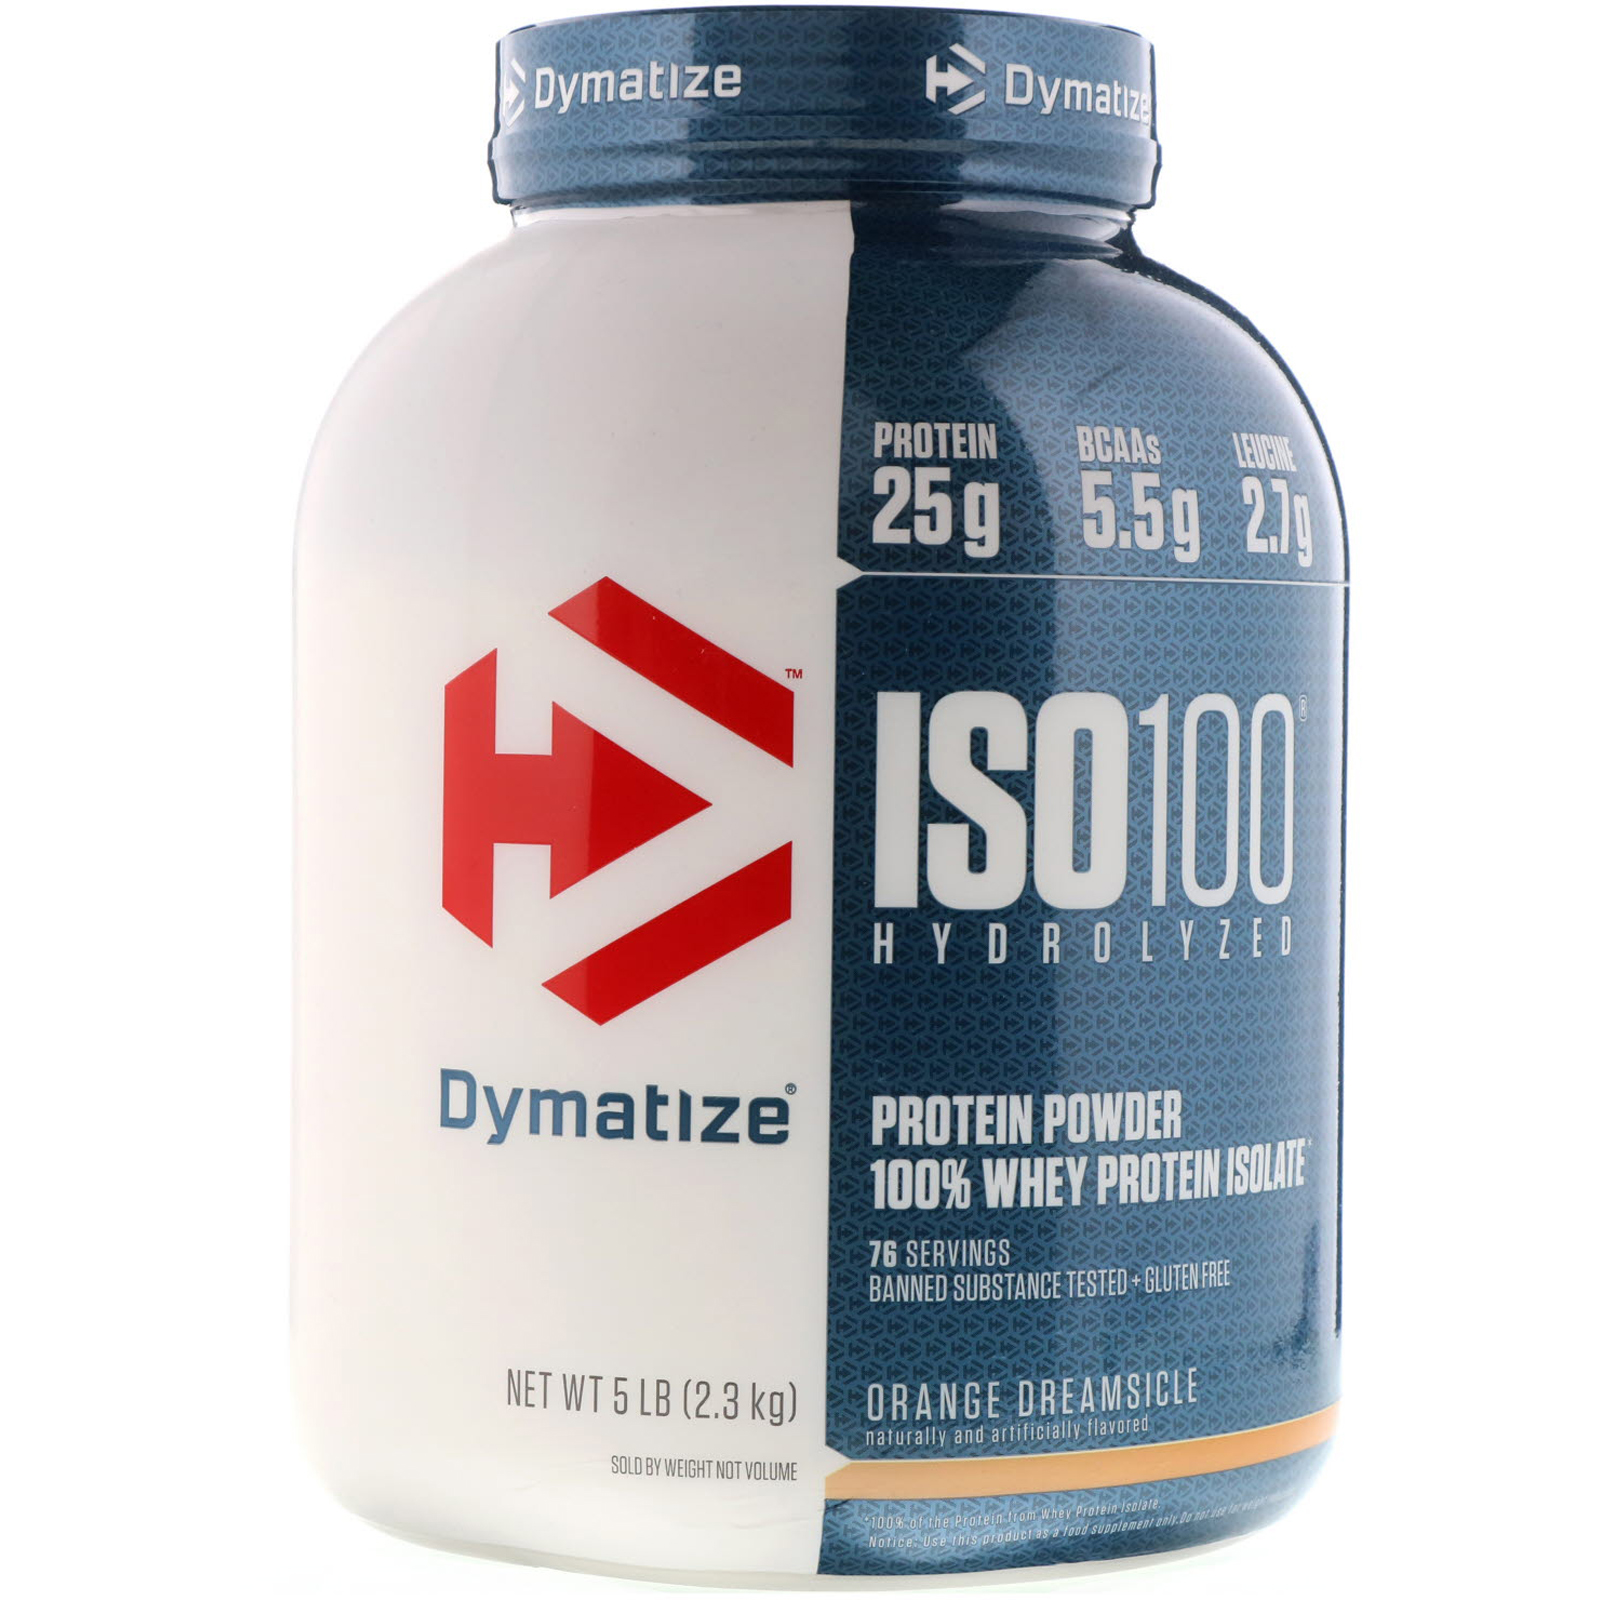 Dymatize Nutrition ISO 100 Hydrolyzed Whey Protein Isolate Orange Dreamsicle 5 Lbs 23 Kg